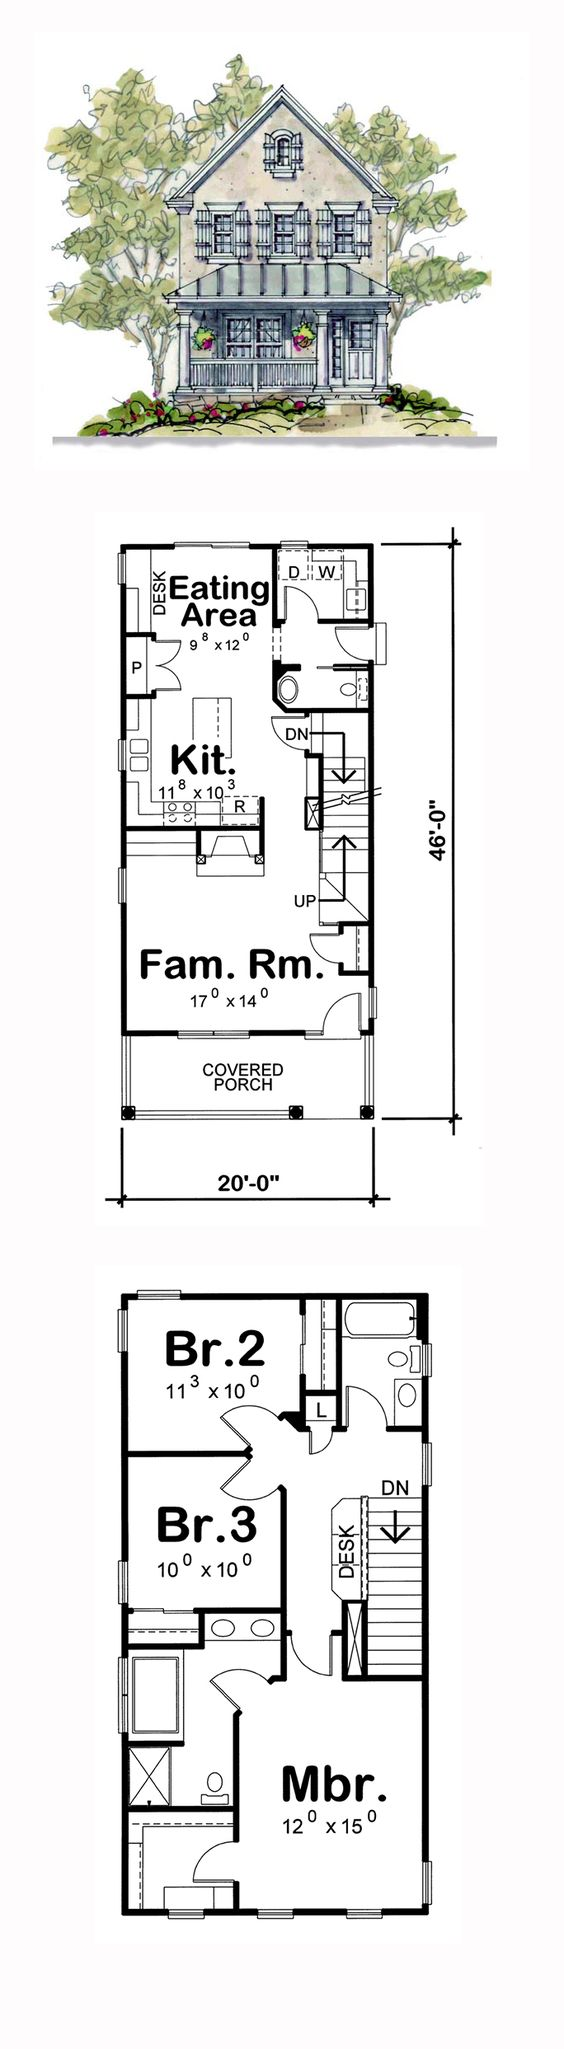 Narrow lot house plans house plans and bedrooms on pinterest for Narrow lot house plans